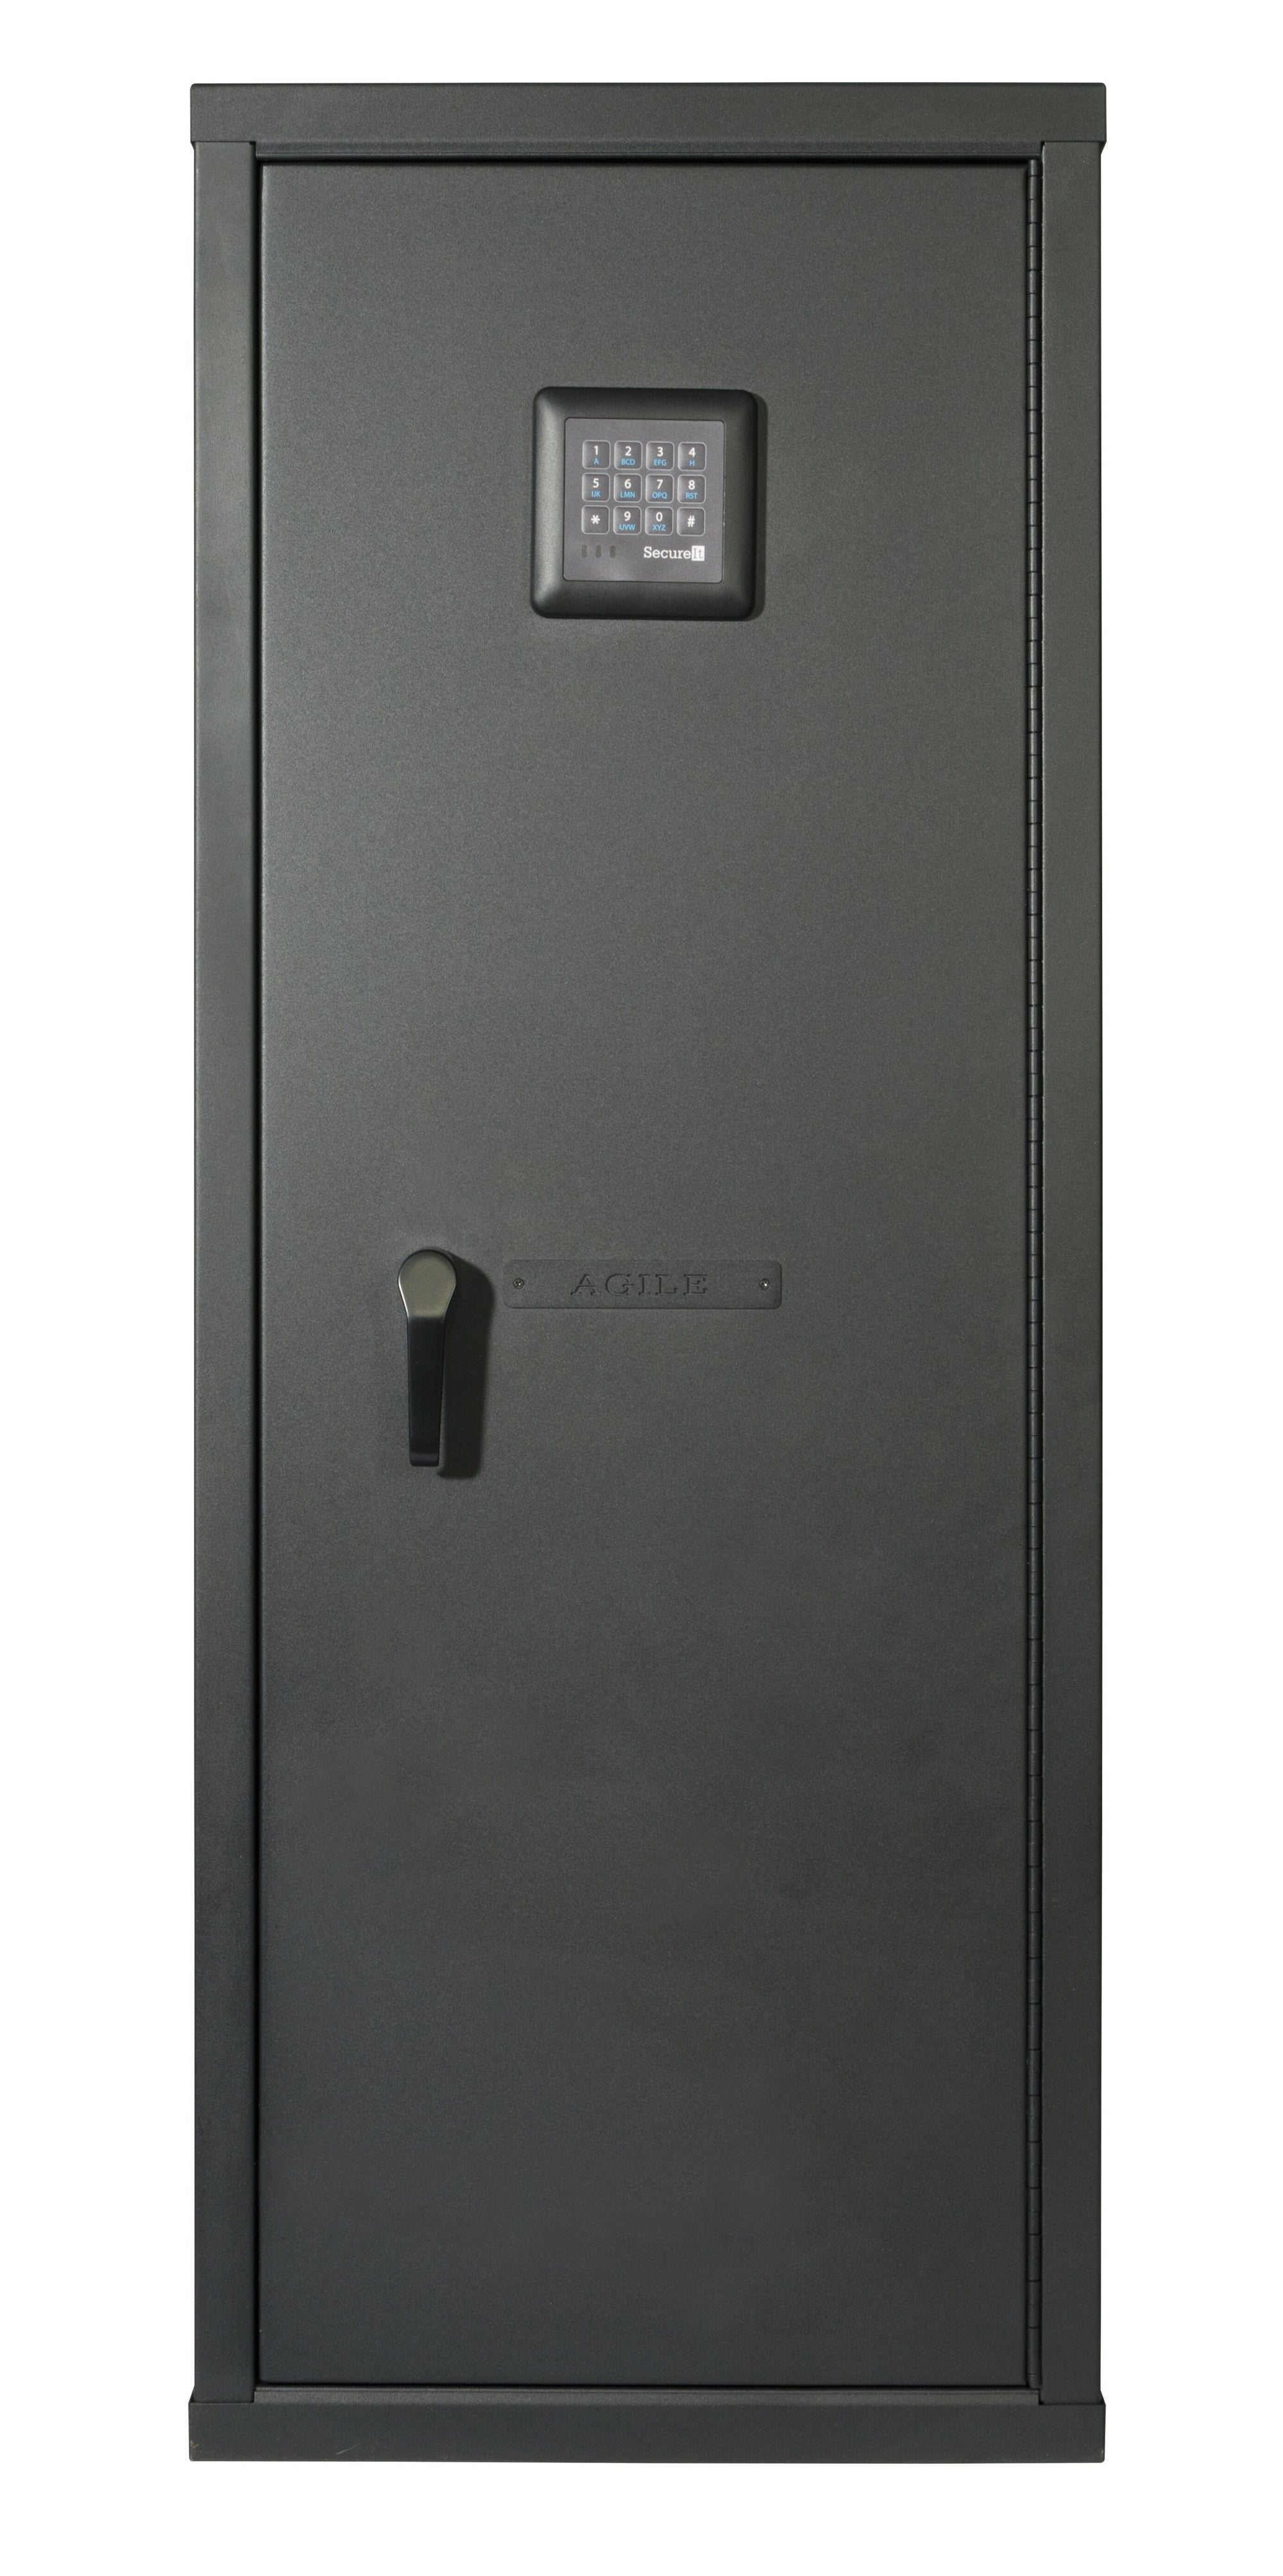 Weapon Cabinets - SecureIt FB-52KD-06 Agile Model 52 Ultralight Gun Safe